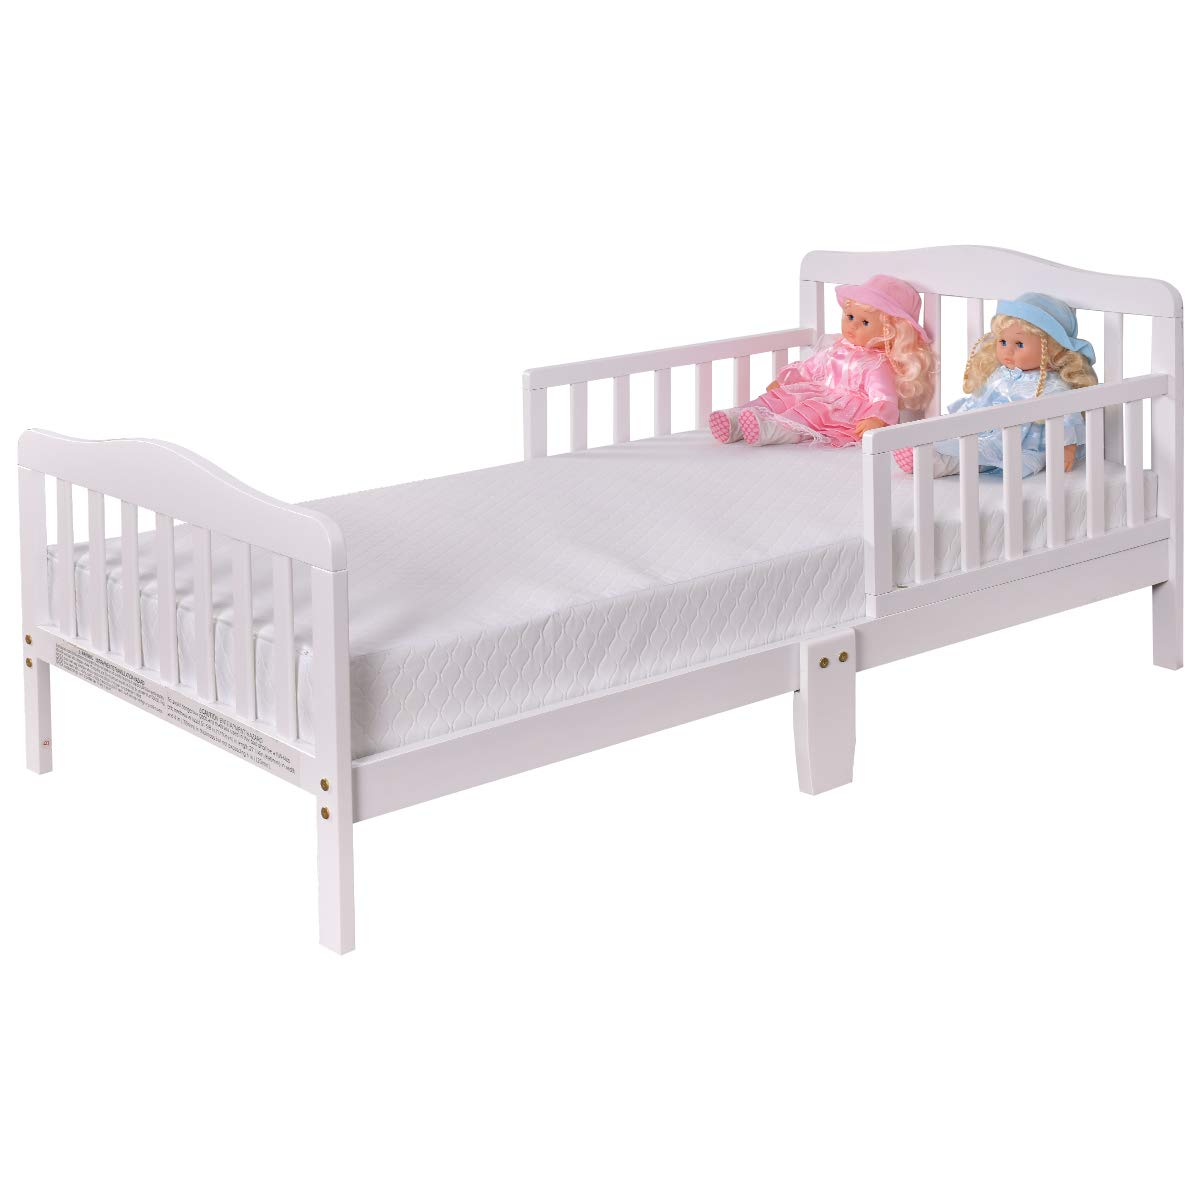 Costzon Toddler Bed, Wood Kids Bedframe Children Classic Sleeping Bedroom Furniture w/Safety Rail Fence (White) by Costzon